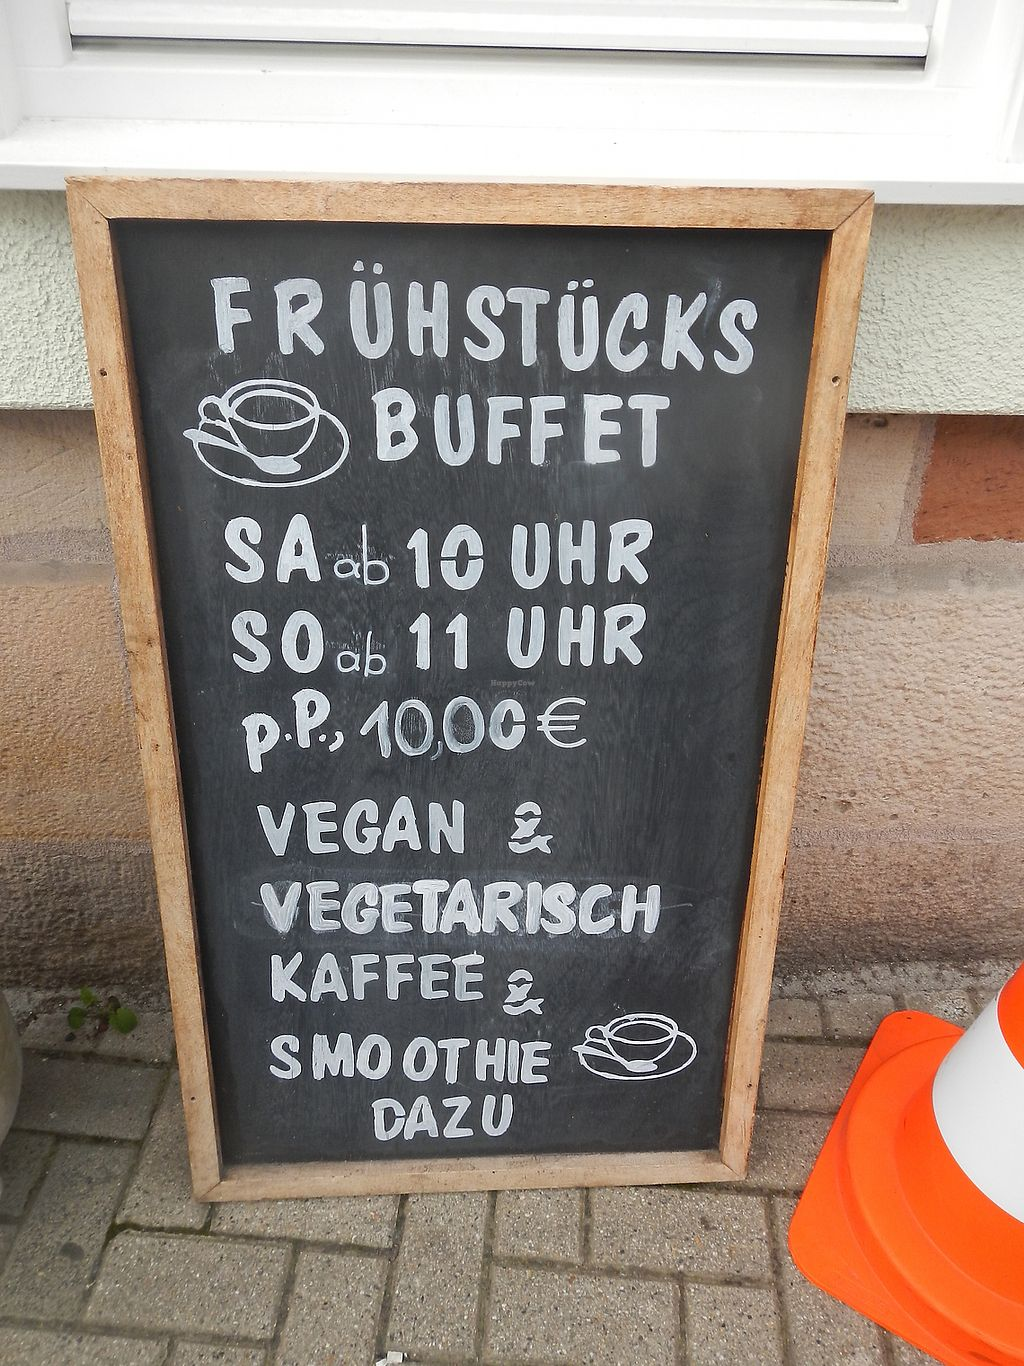 """Photo of  Leni's Cafe Boehnchen  by <a href=""""/members/profile/falafffel"""">falafffel</a> <br/>vegan & vegetarian breakfast buffet <br/> September 6, 2017  - <a href='/contact/abuse/image/100271/301543'>Report</a>"""